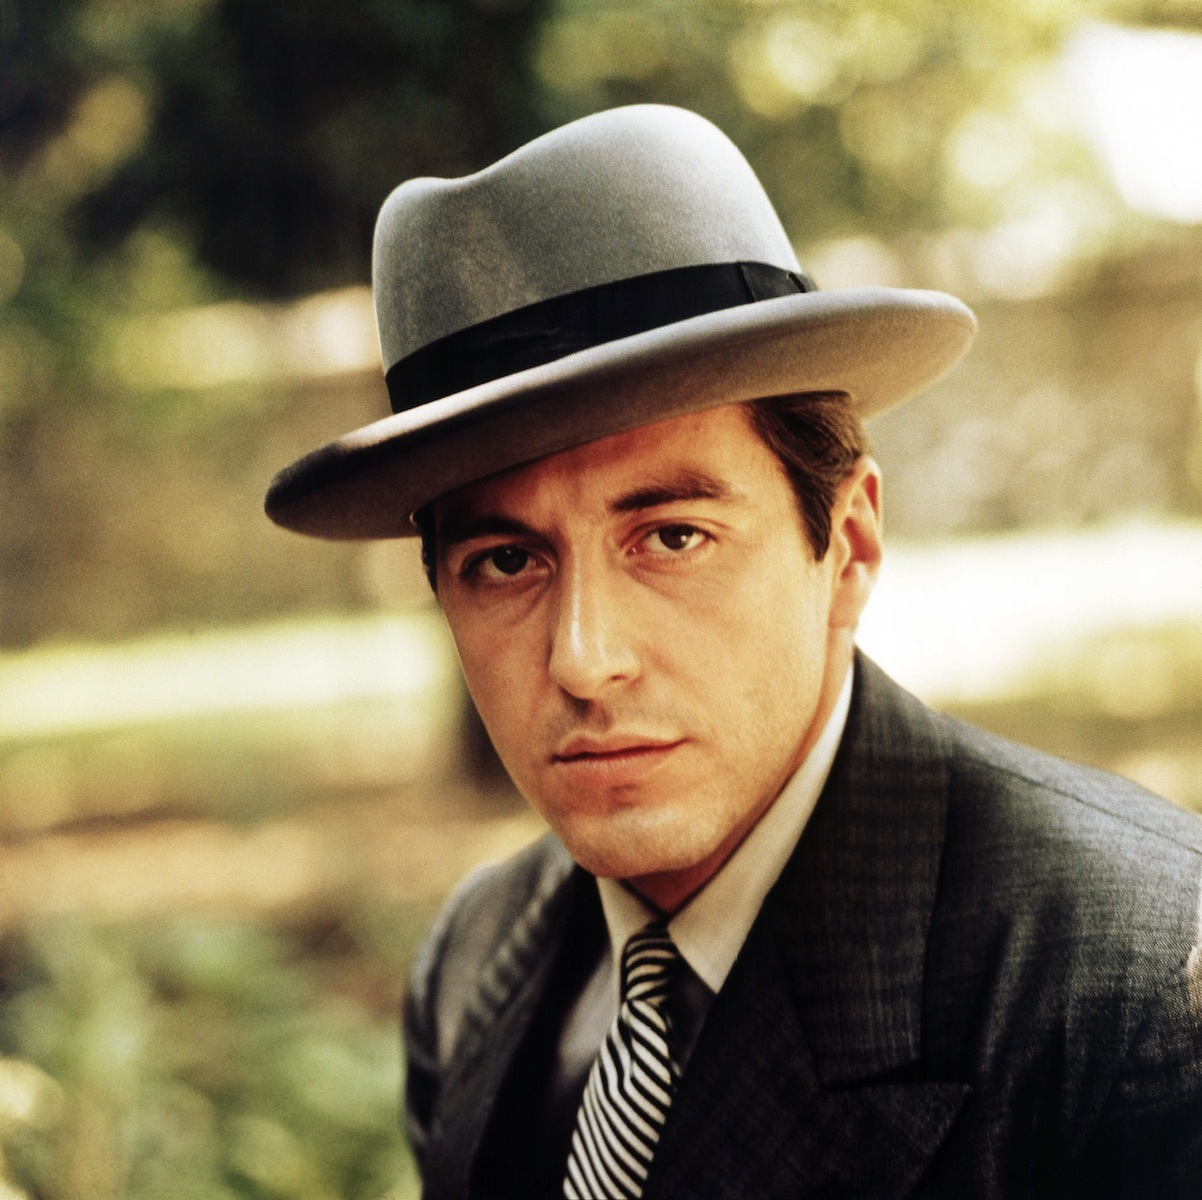 holding-al-pacino-best-and-worst-film-moments